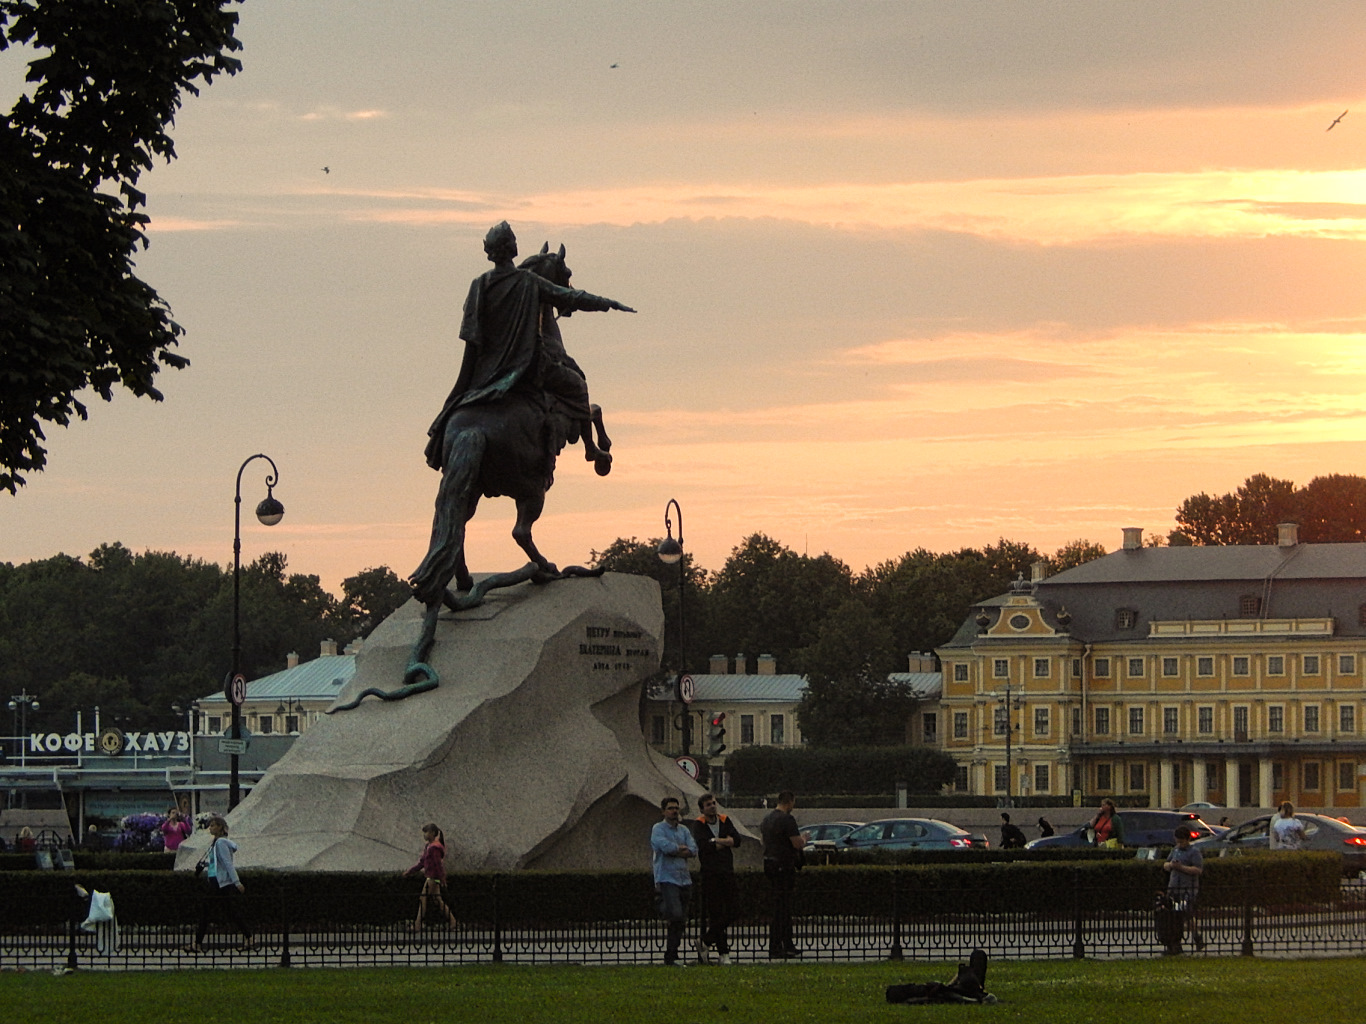 view of Menshikov Palace and statue of Peter the Great, St Petersburg